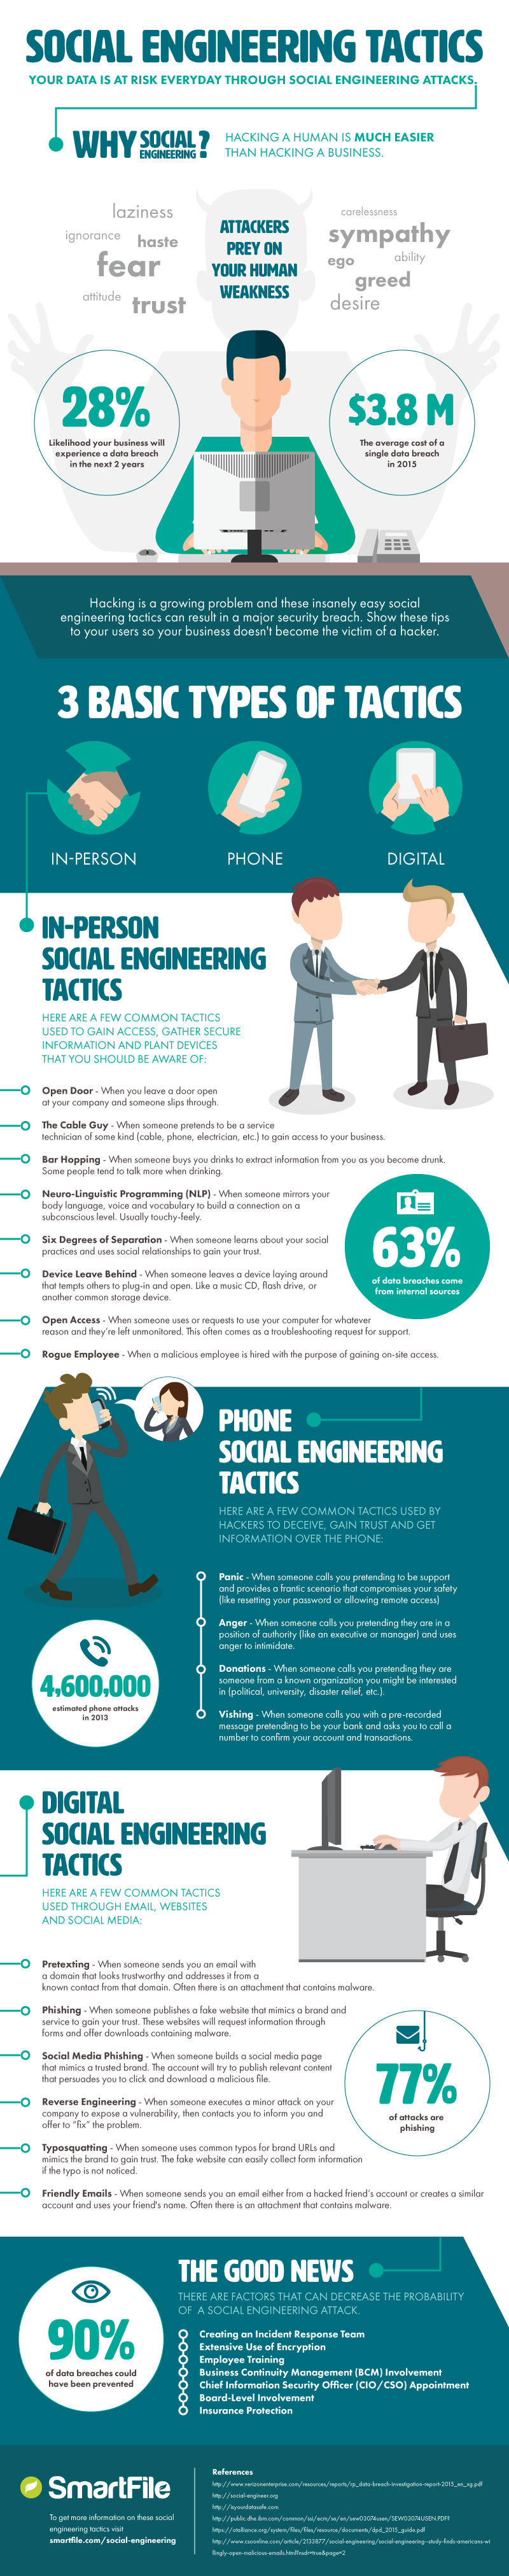 smartfile-social-engineering-infographic